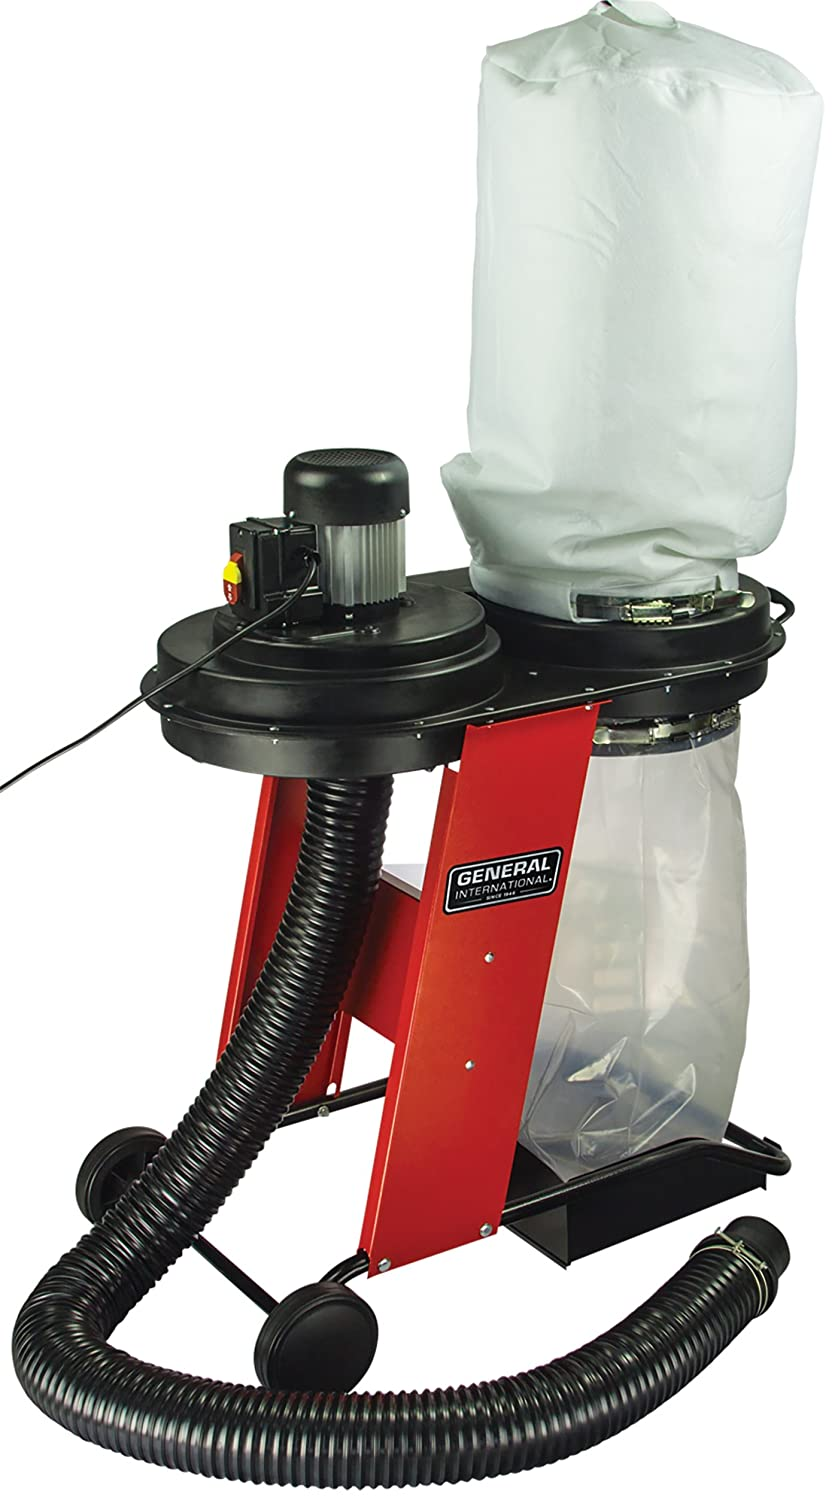 General Intl. Power Products BT8010 550W Dust Collector